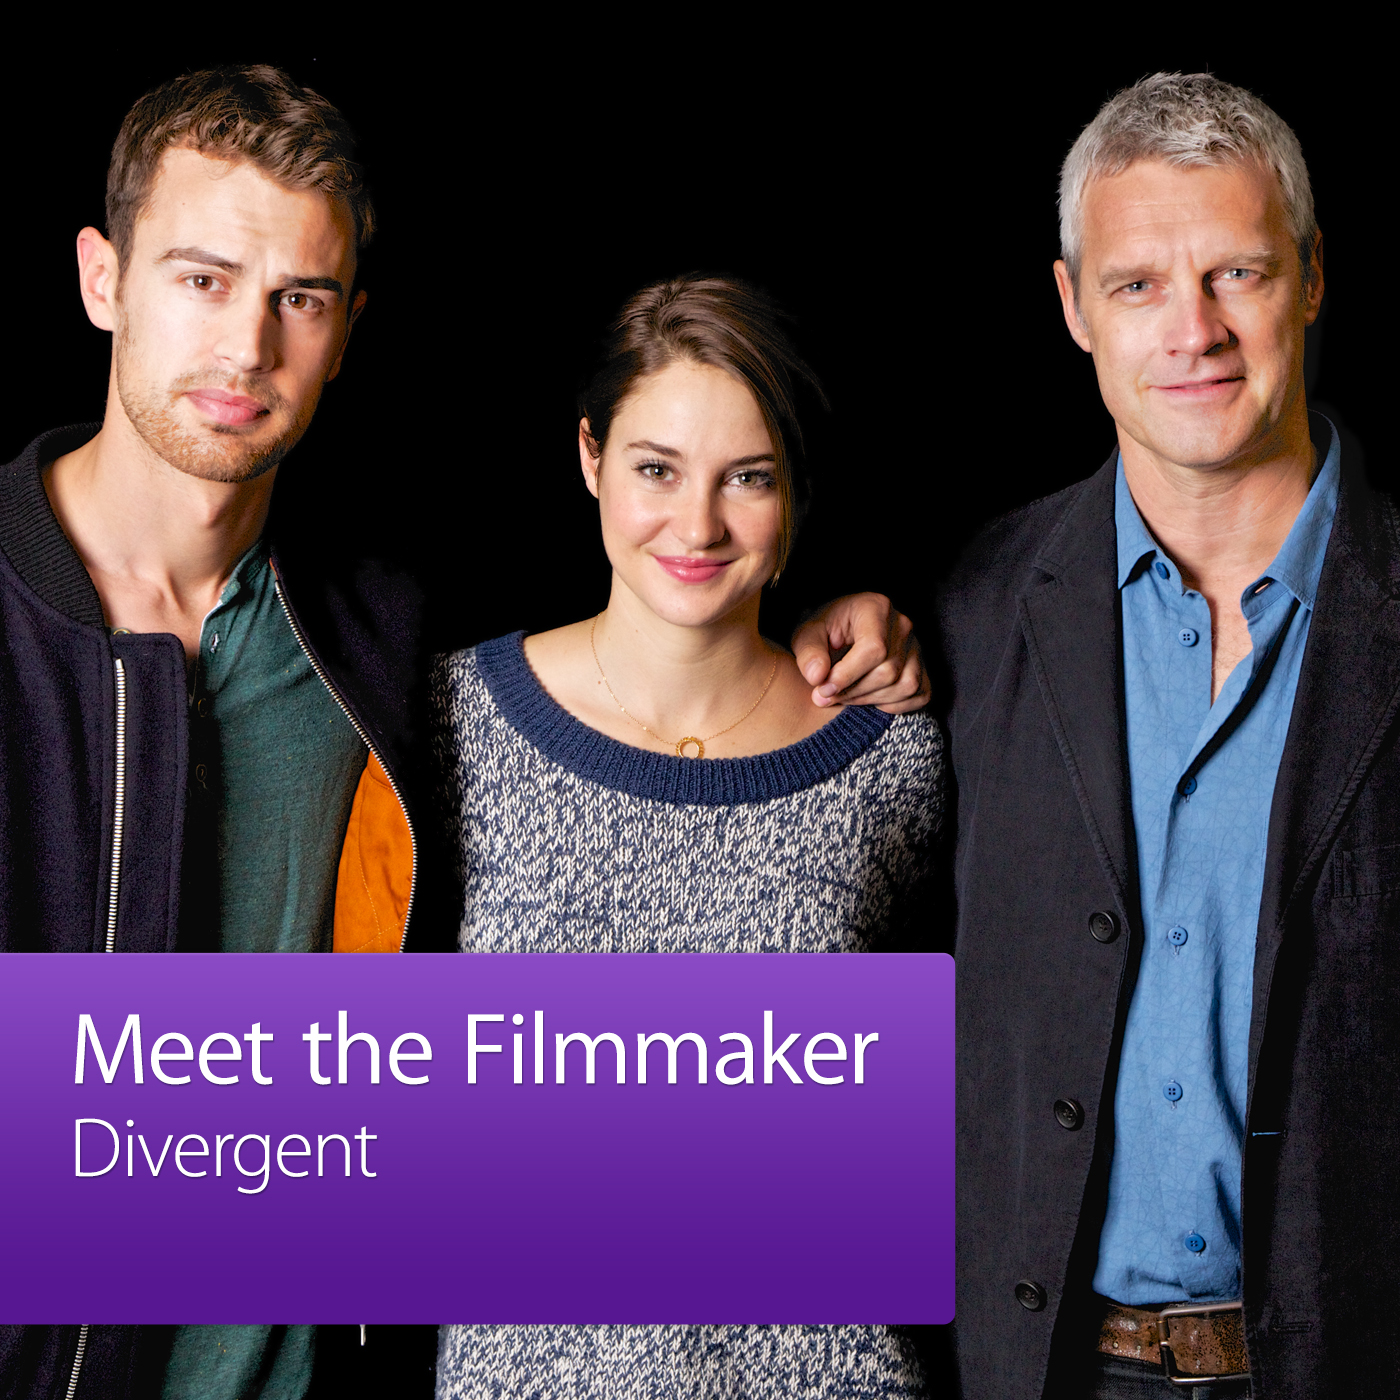 Divergent: Meet the Filmmaker